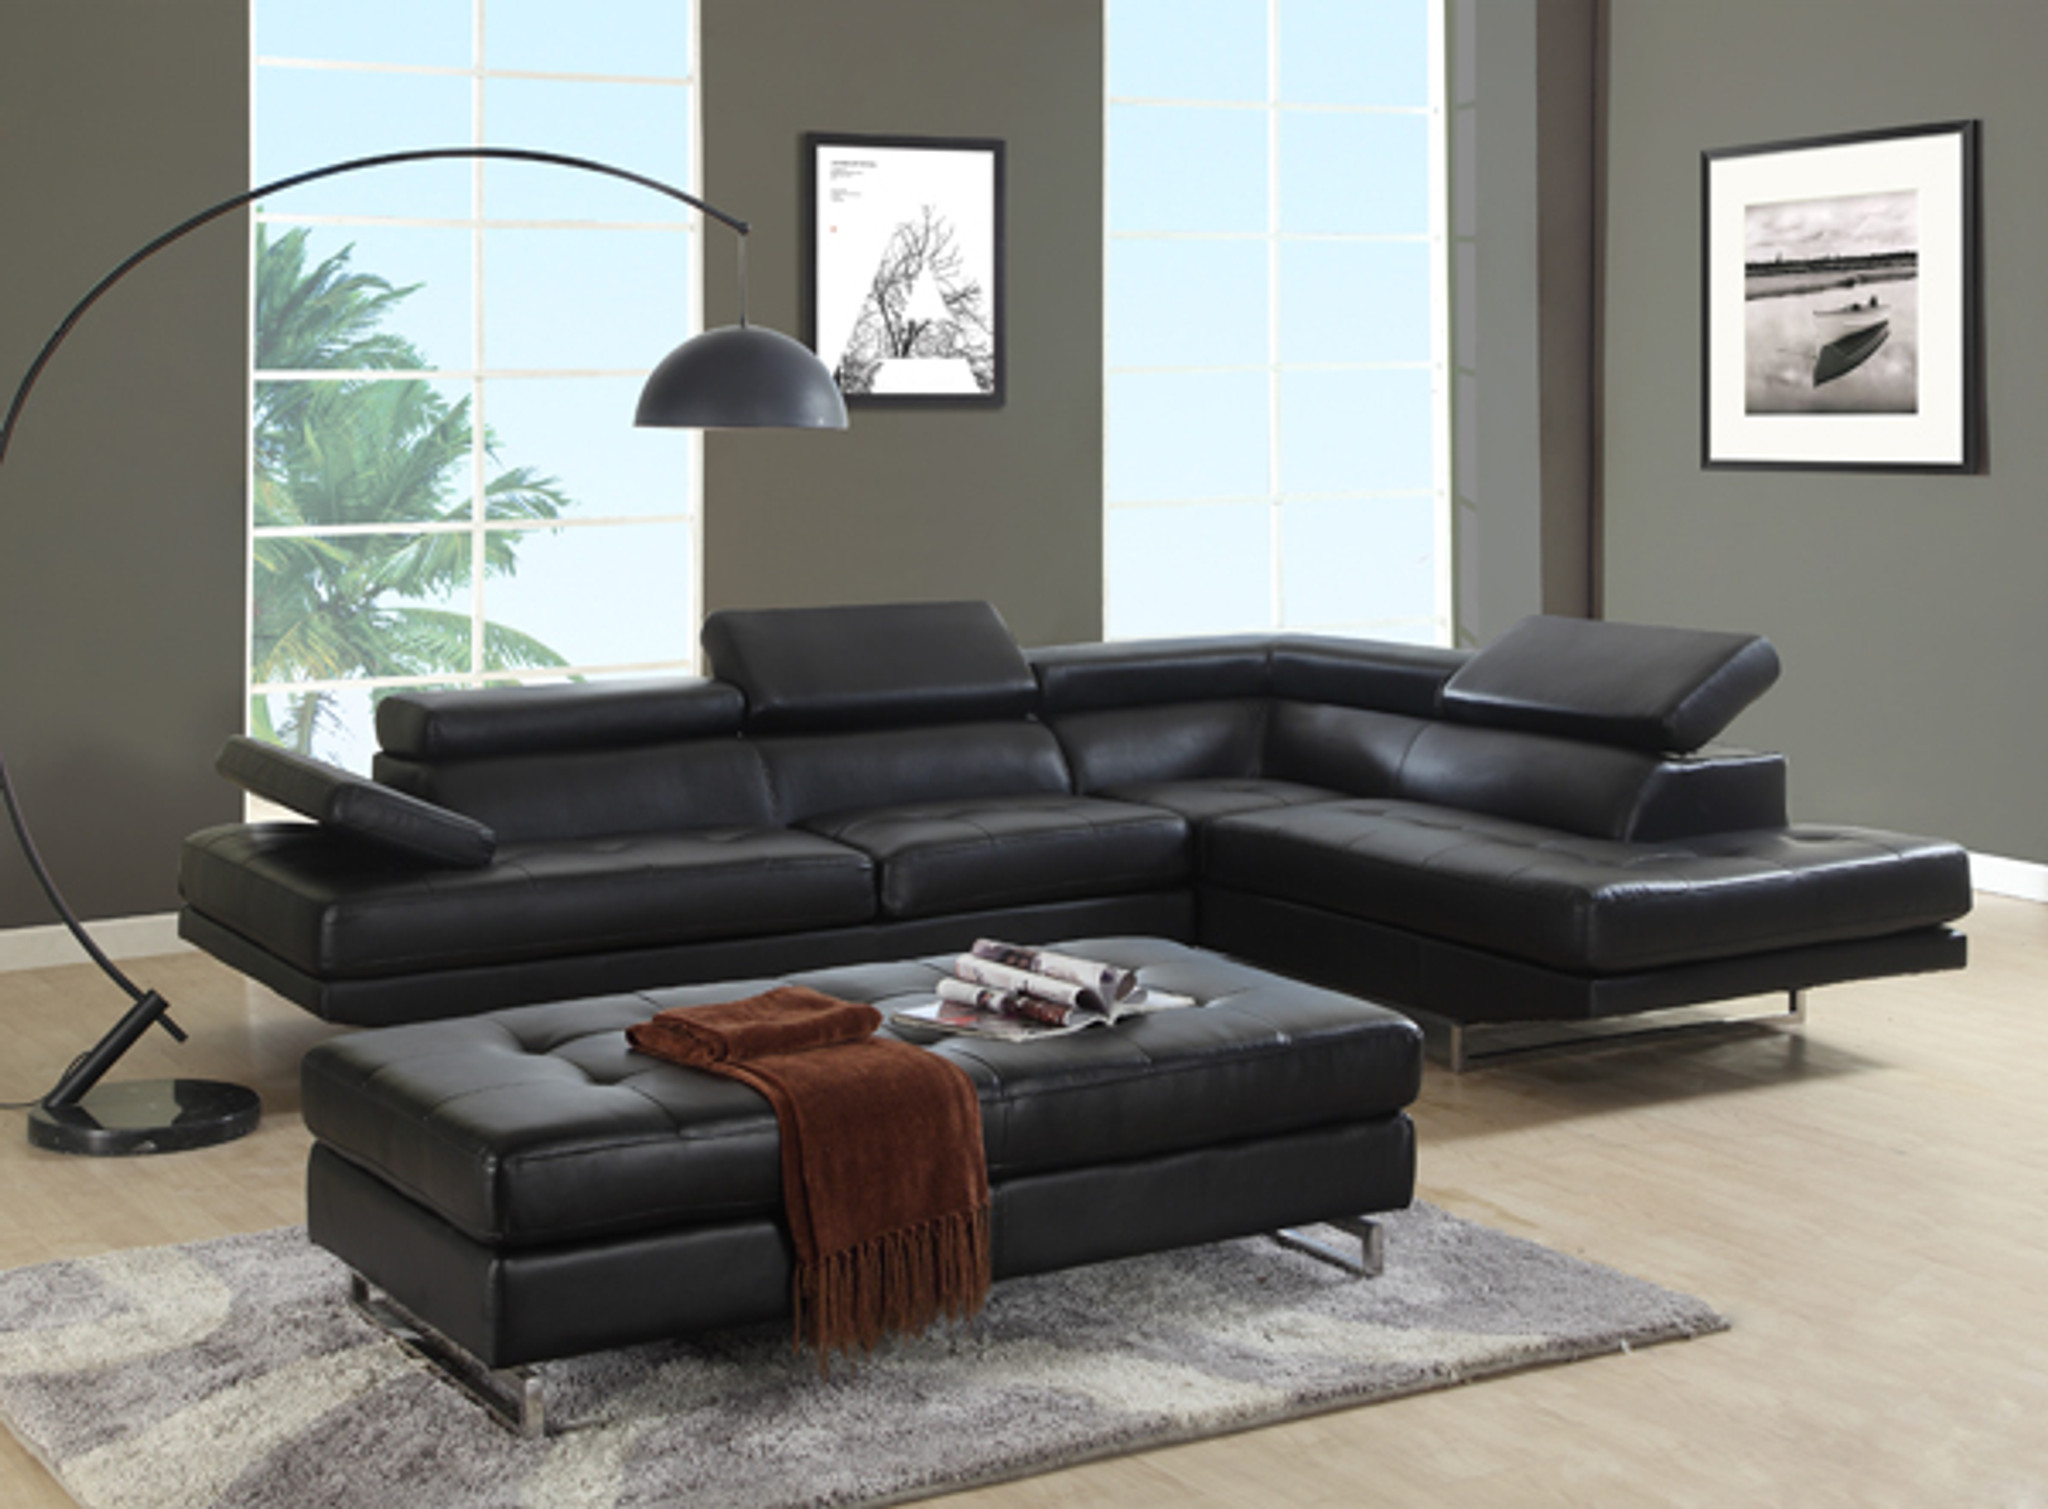 modern sectional sofa chaise in black leather